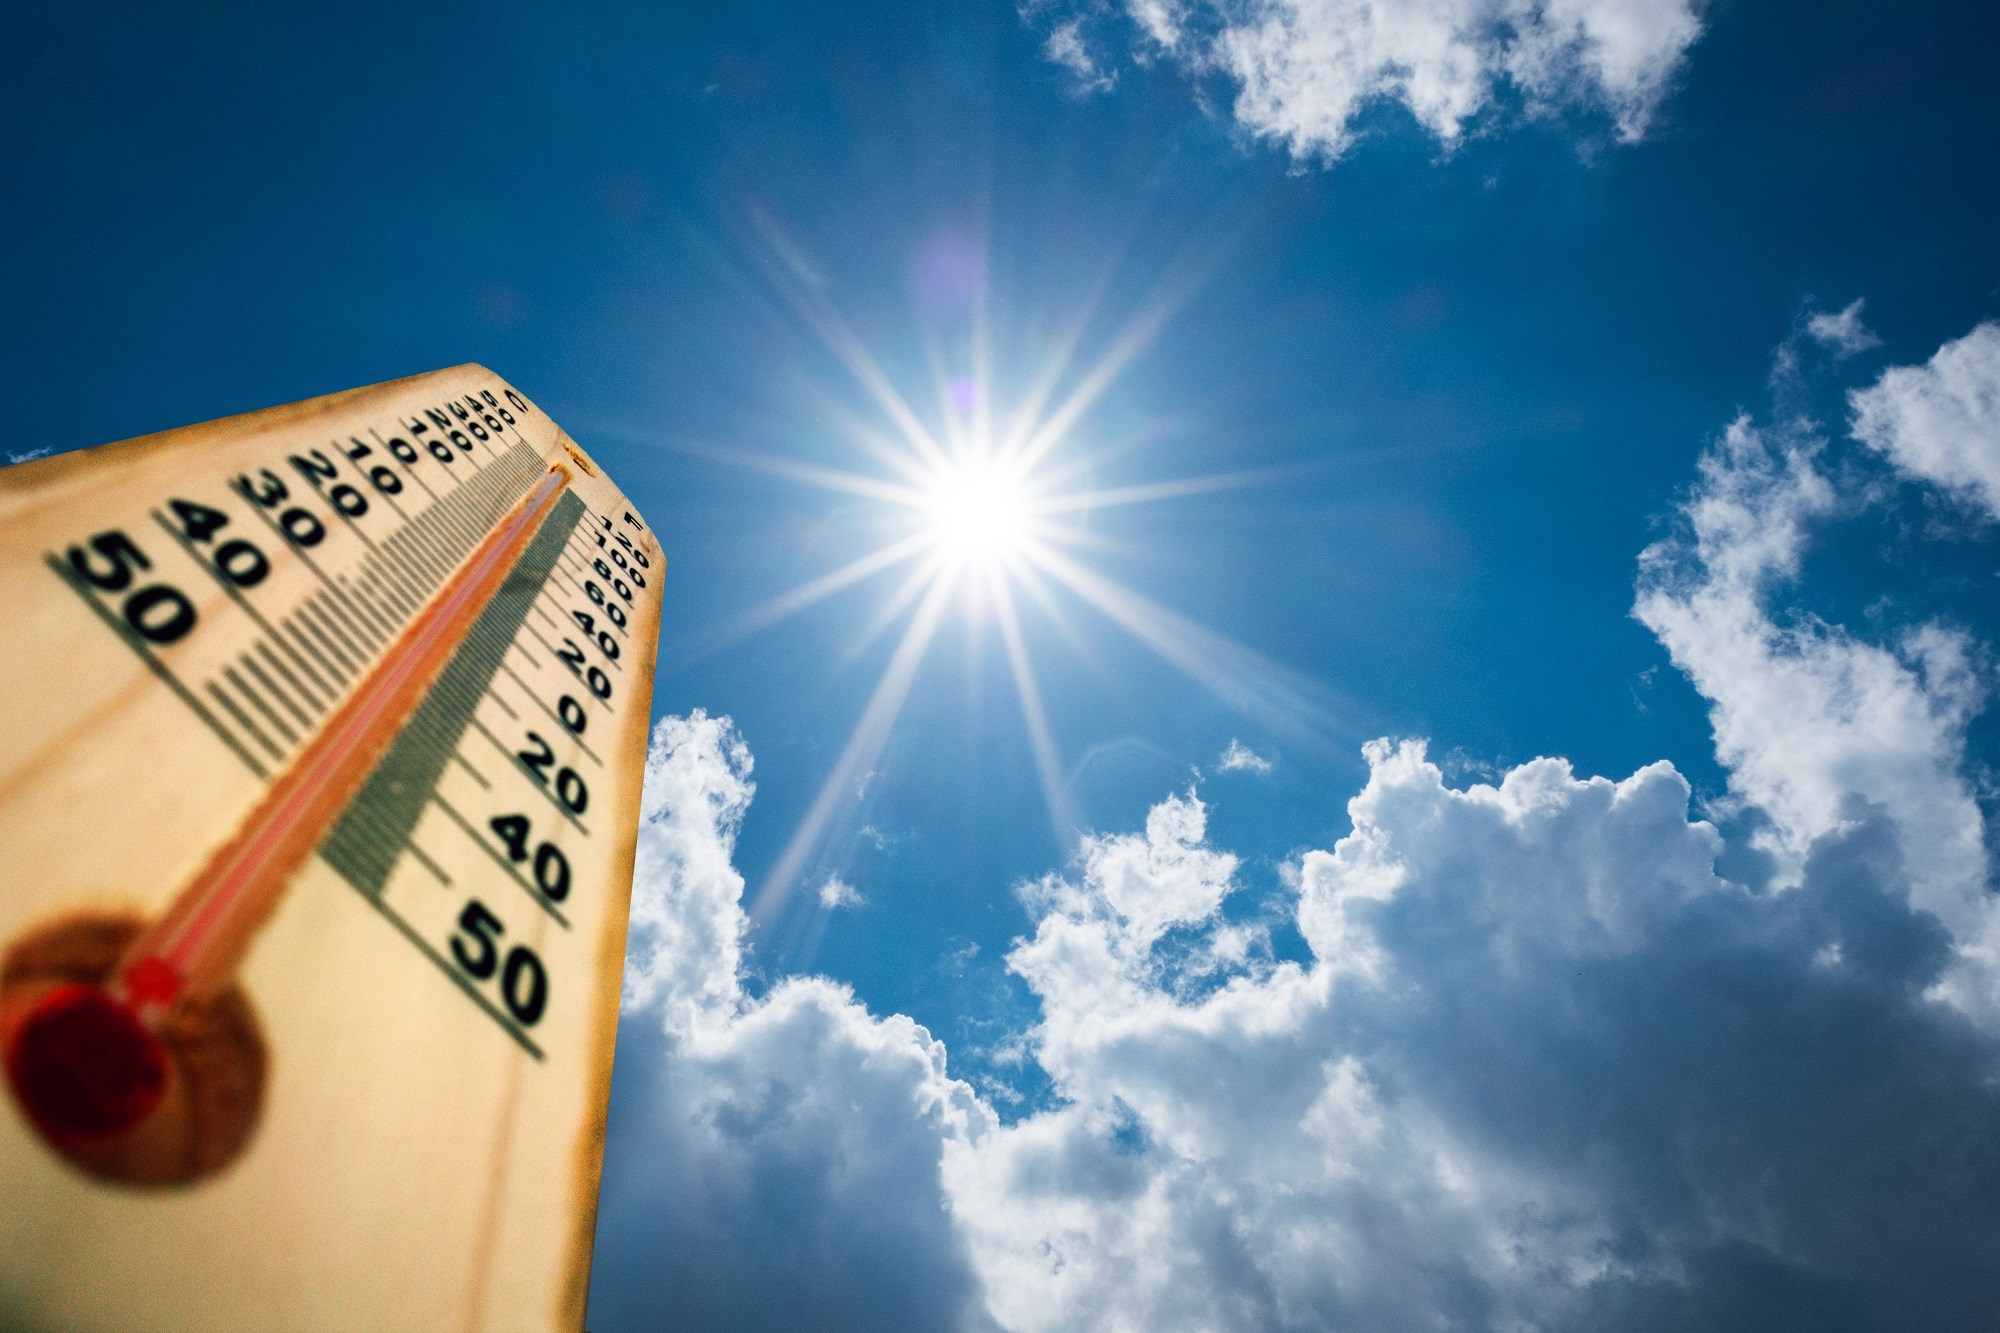 NIH Warns of Increased Risk for Heat-Related Illness in Seniors